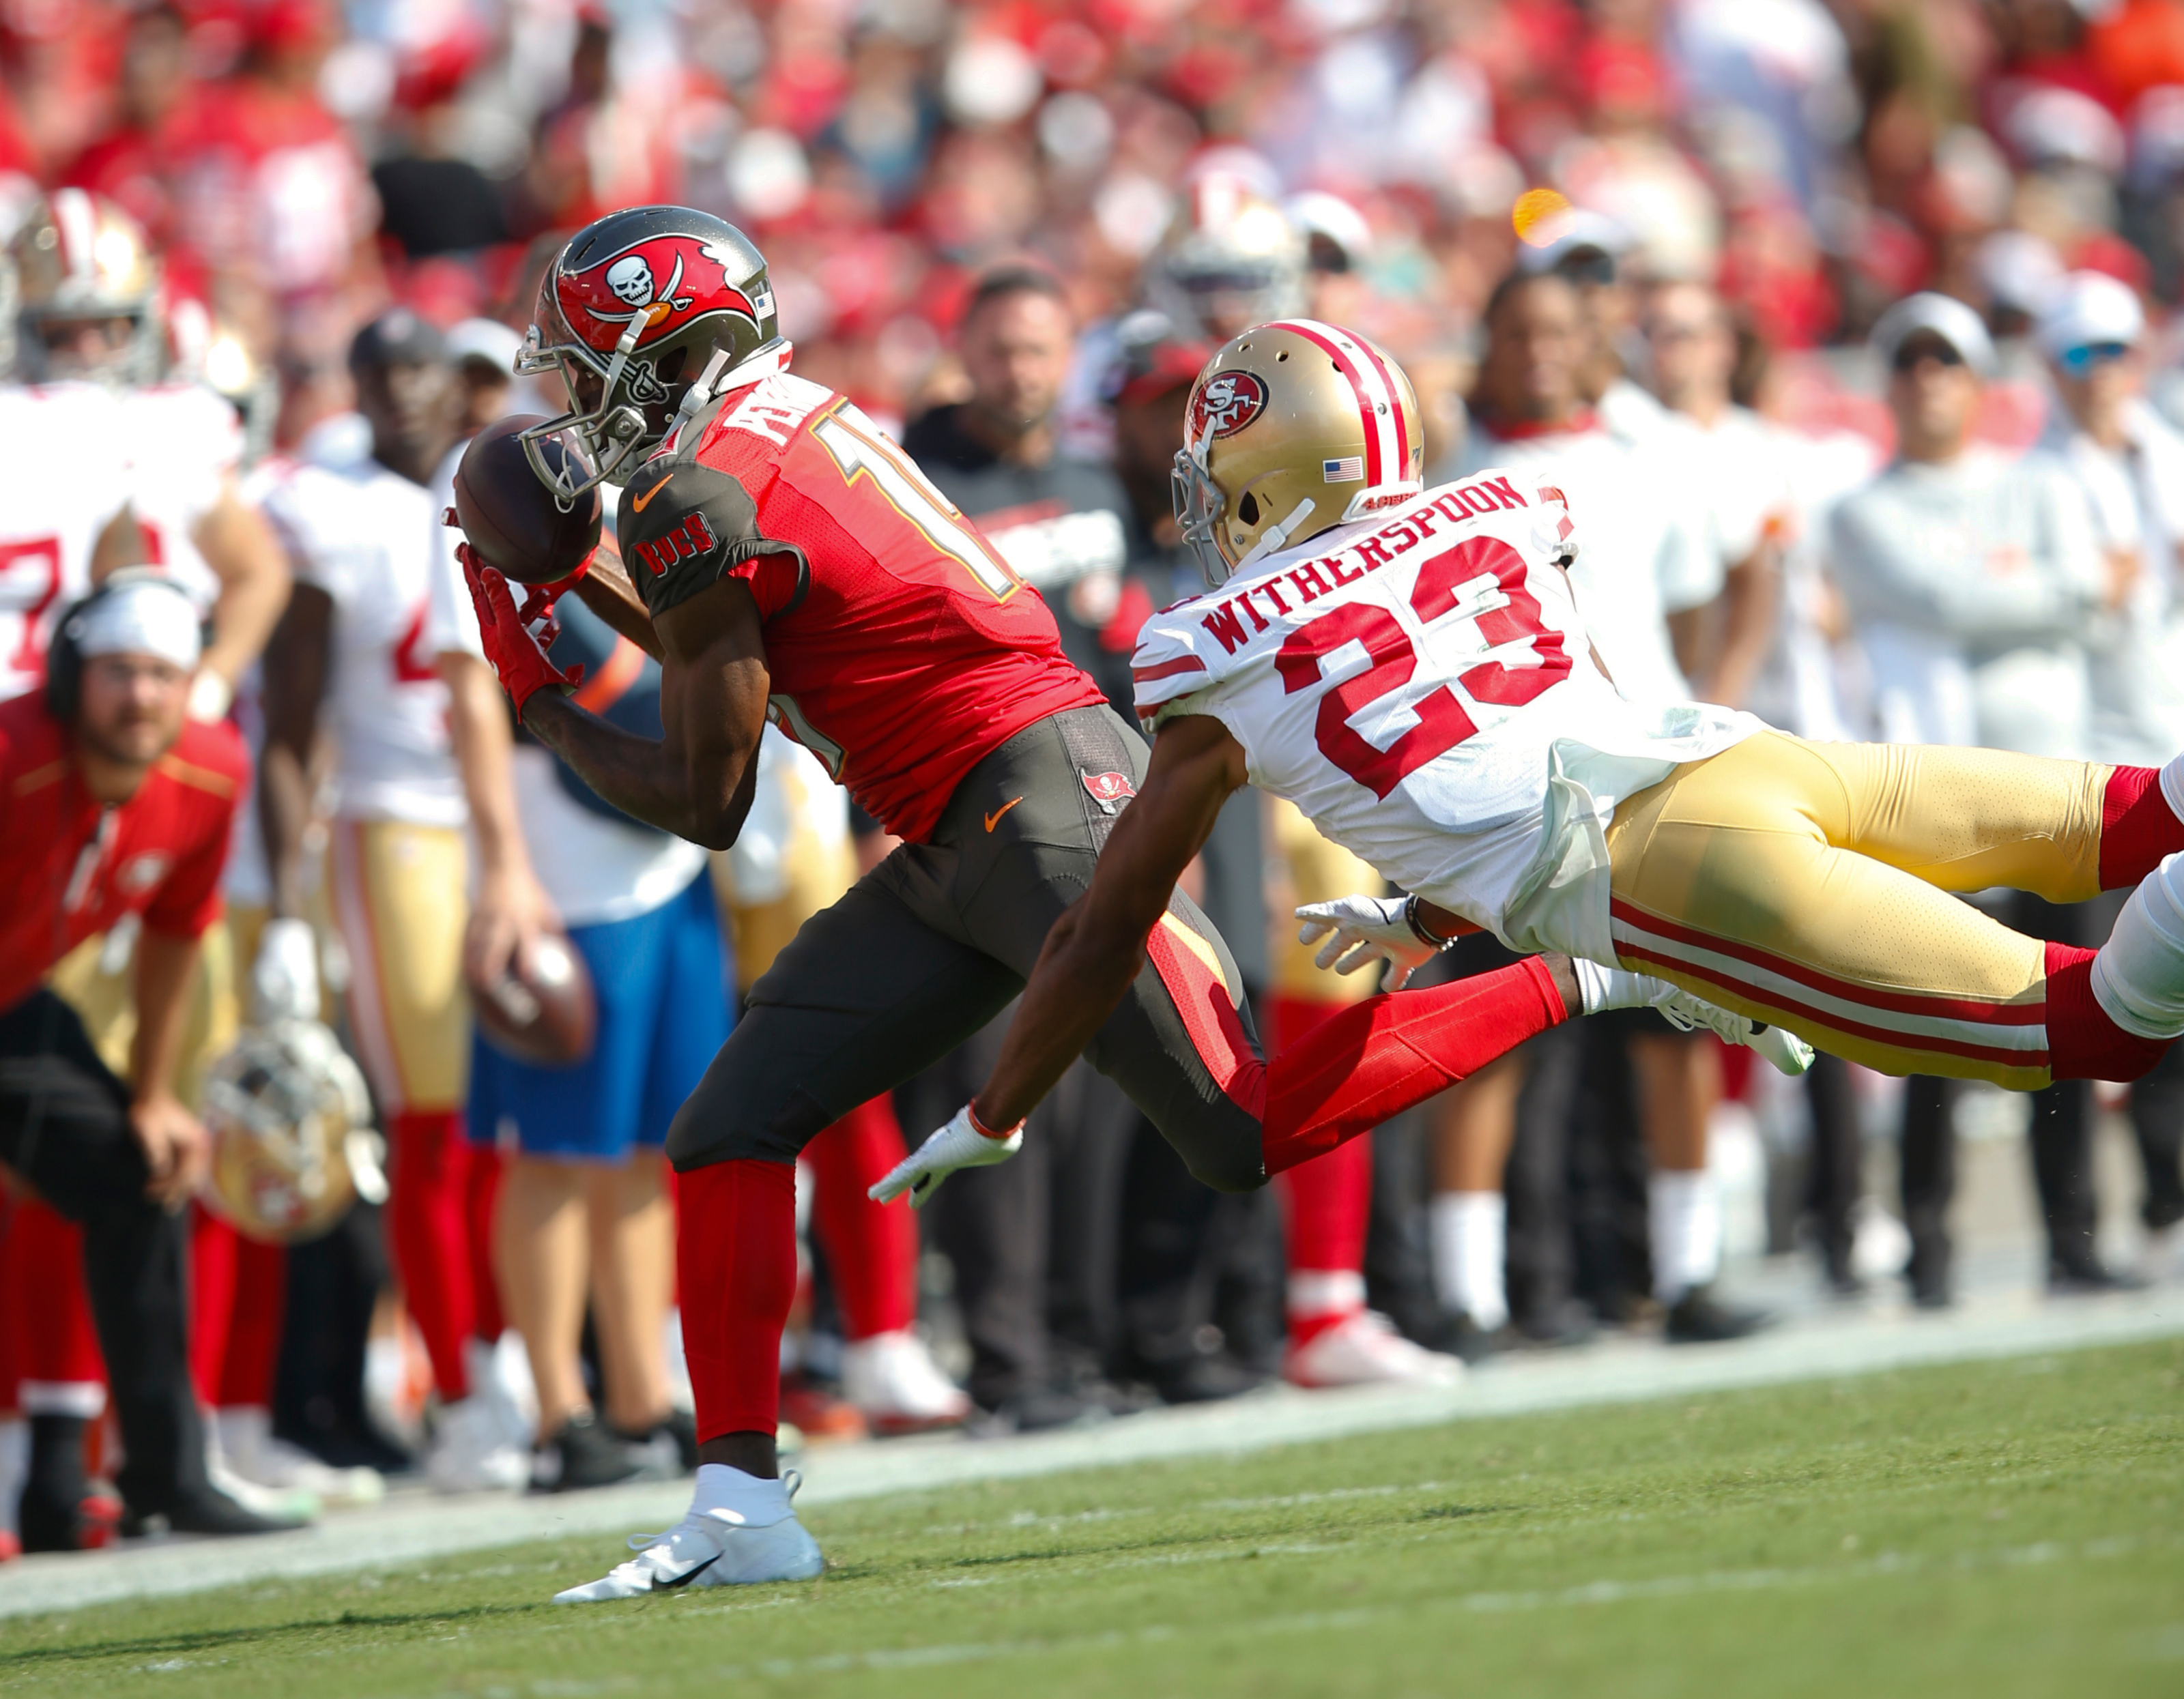 49ers 2020 free agency needs: 3 low-cost options at wide receiver